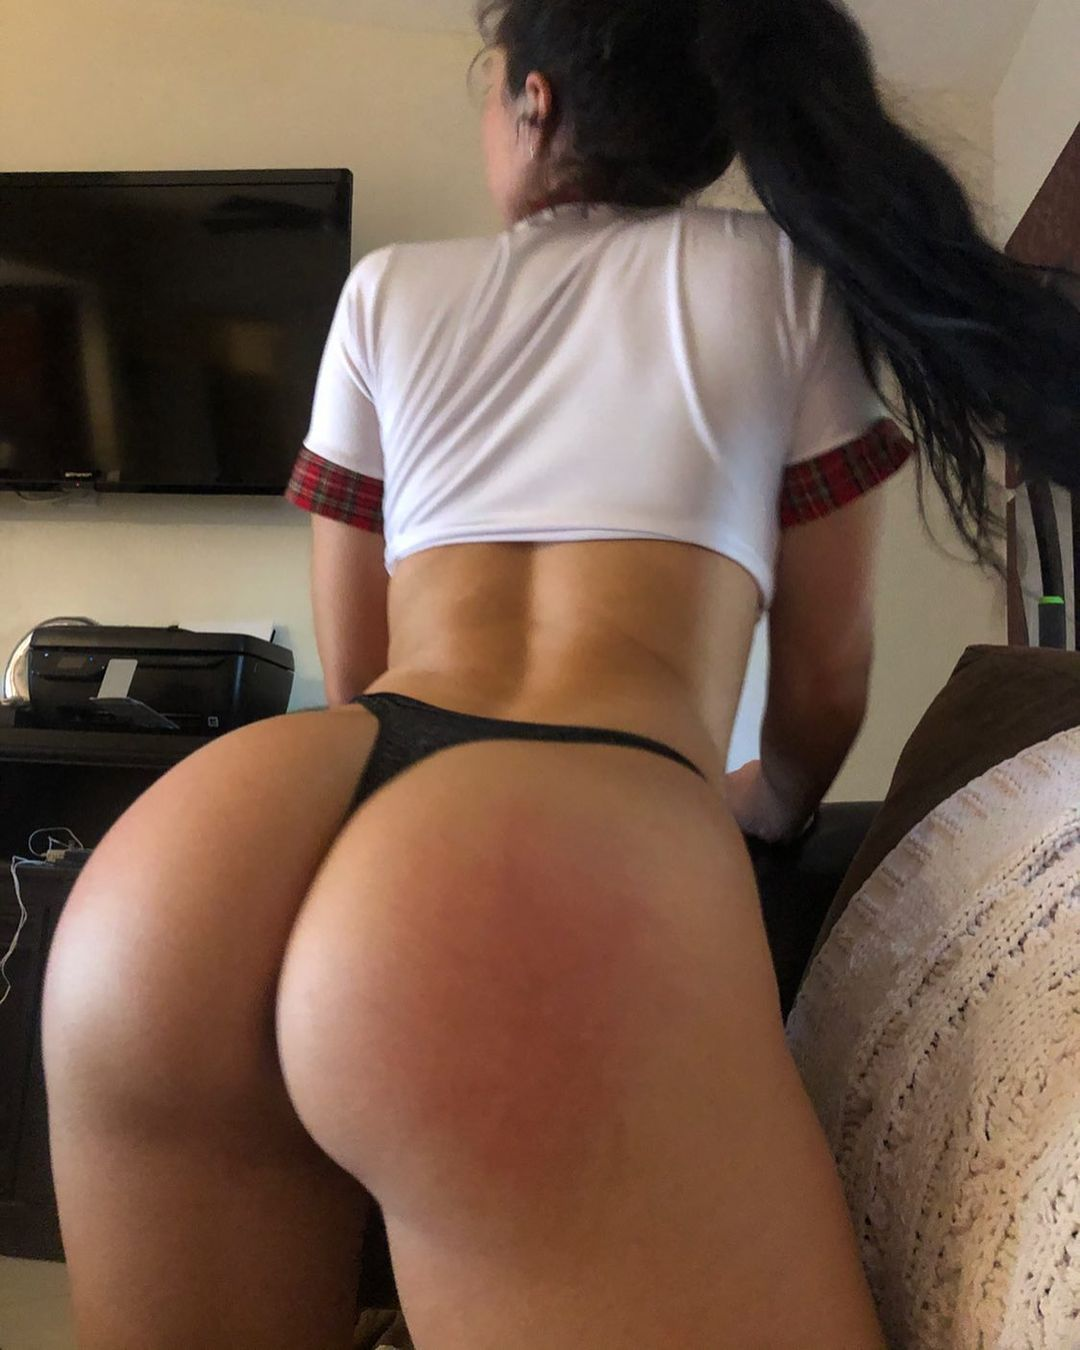 Madison Ginley hot as fuck big ass - Madison Ginley Nude Xxx OnlyFans Leaks